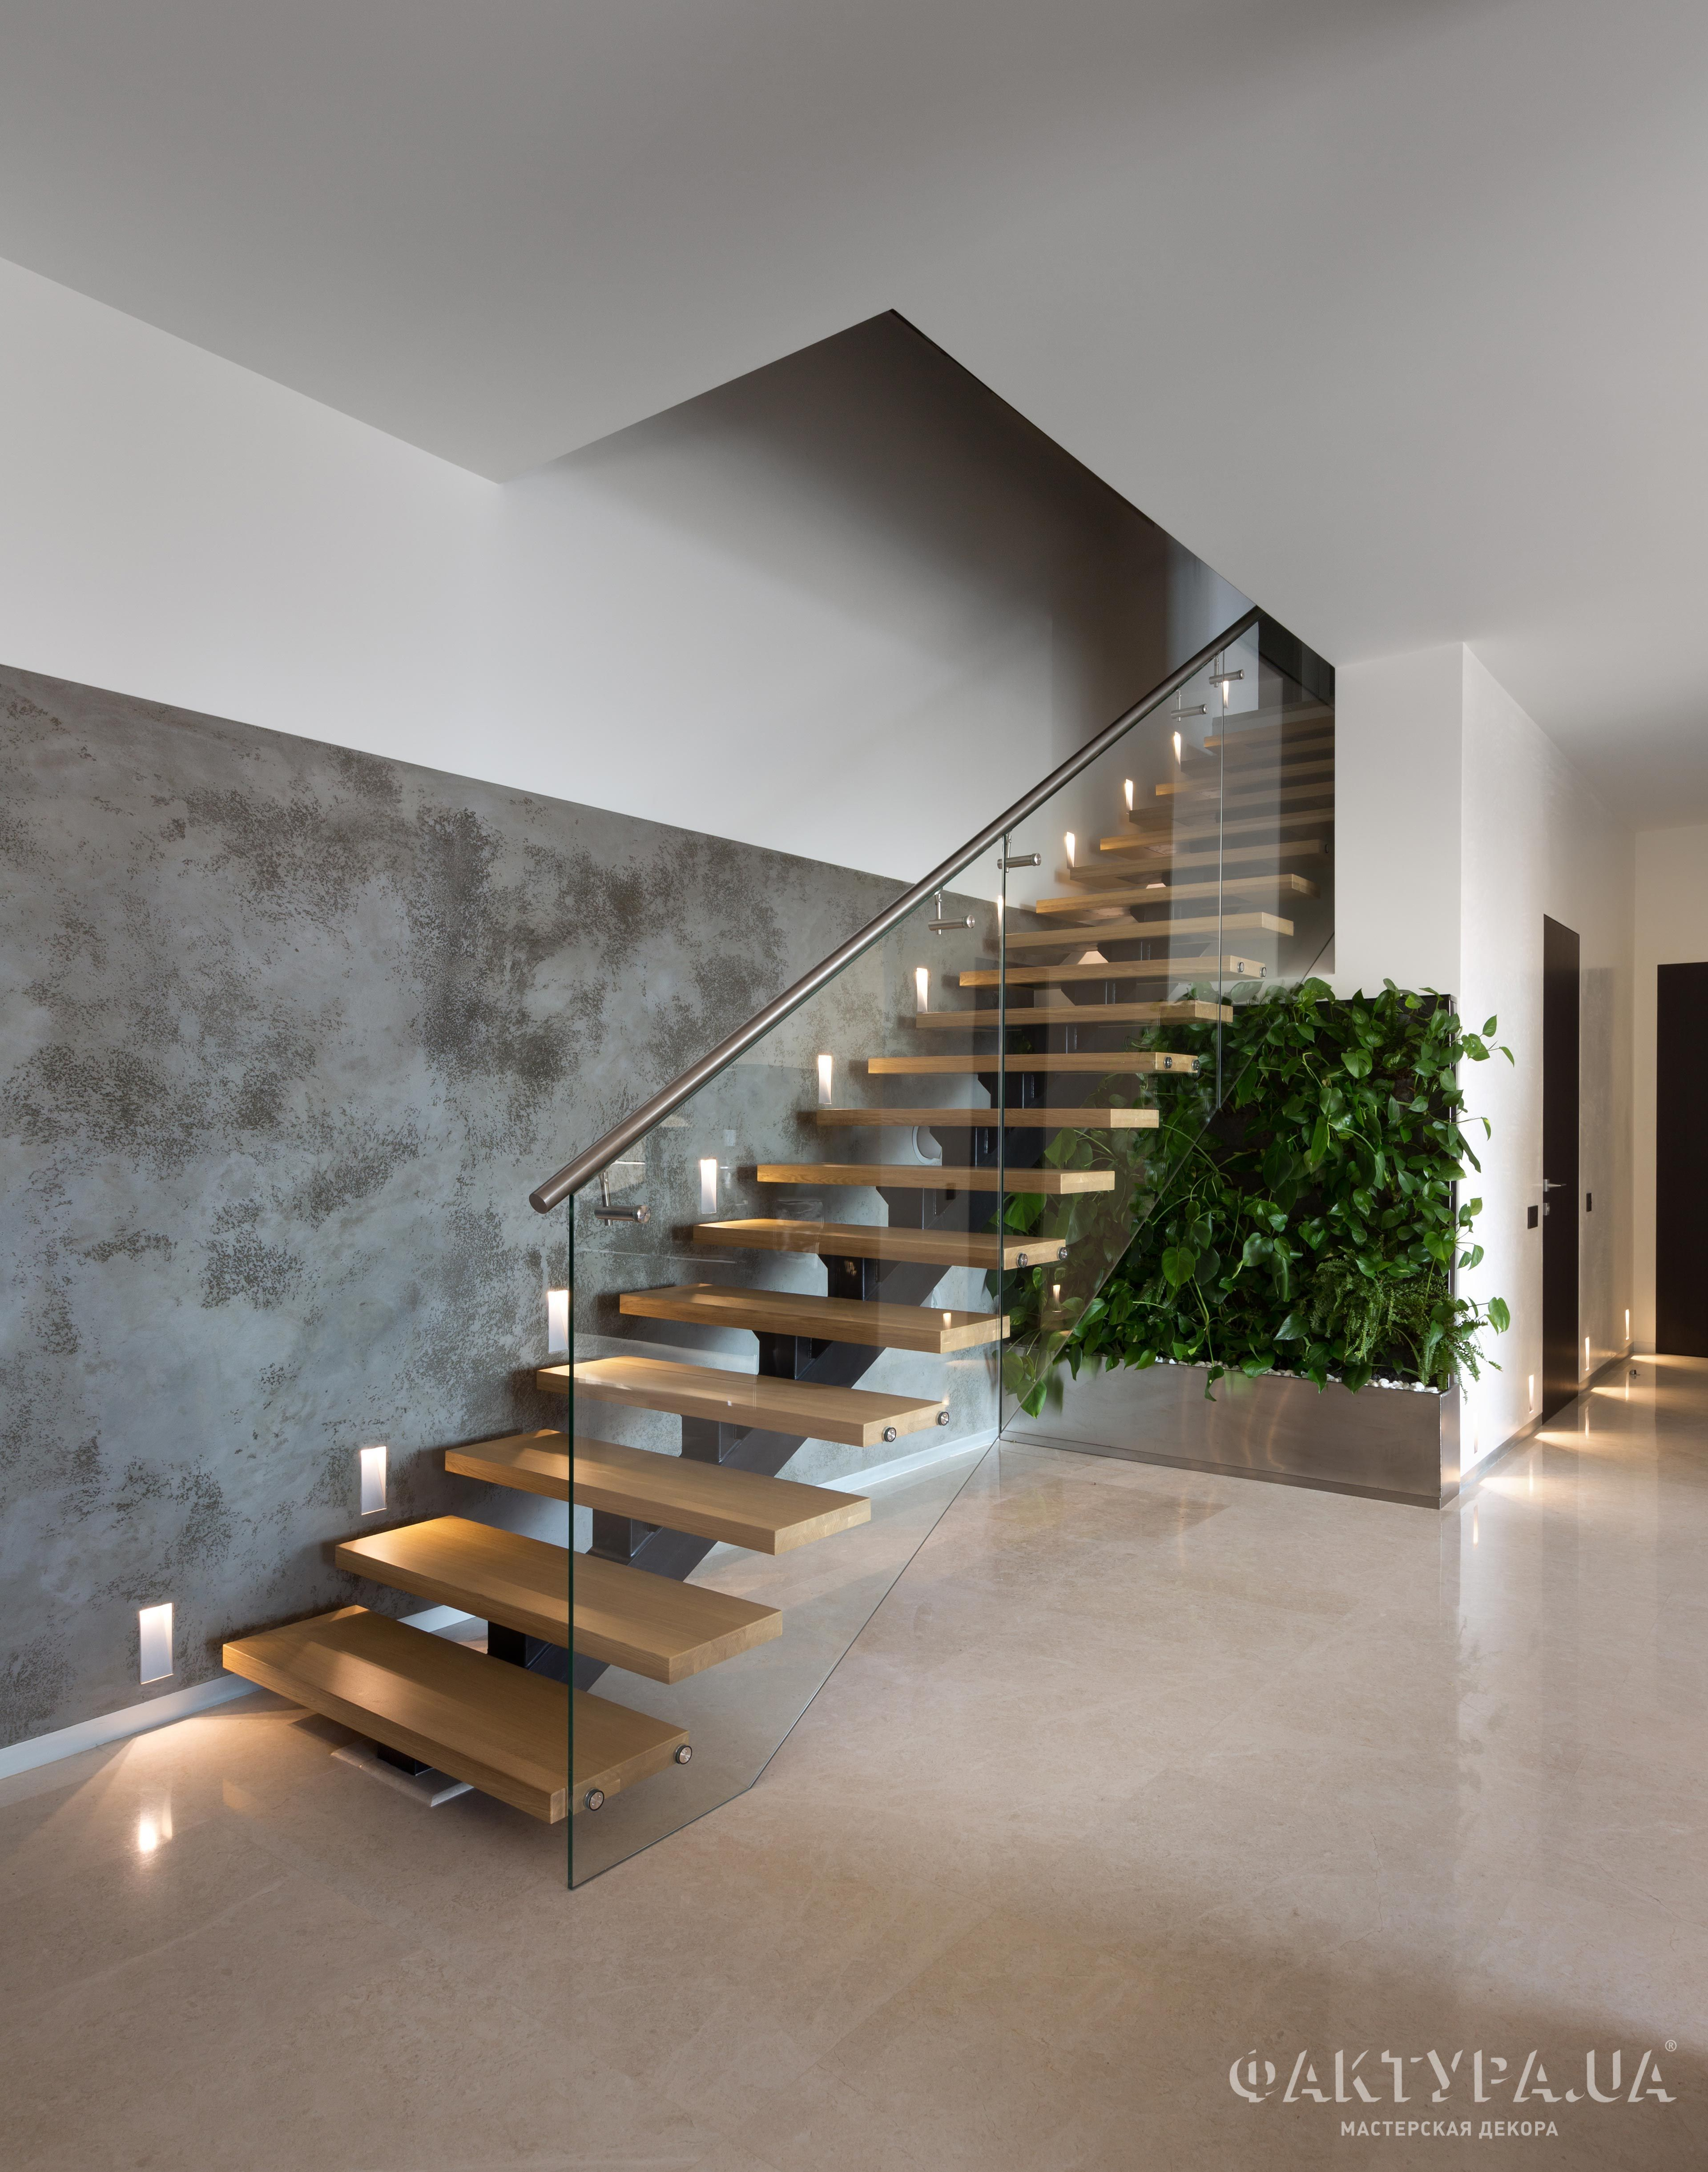 Cool Staircase Ideas Stairs With Beadboard Risers Like This Idea For My Basement Stairs Stairs W Home Stairs Design Stairs Design Modern House Staircase